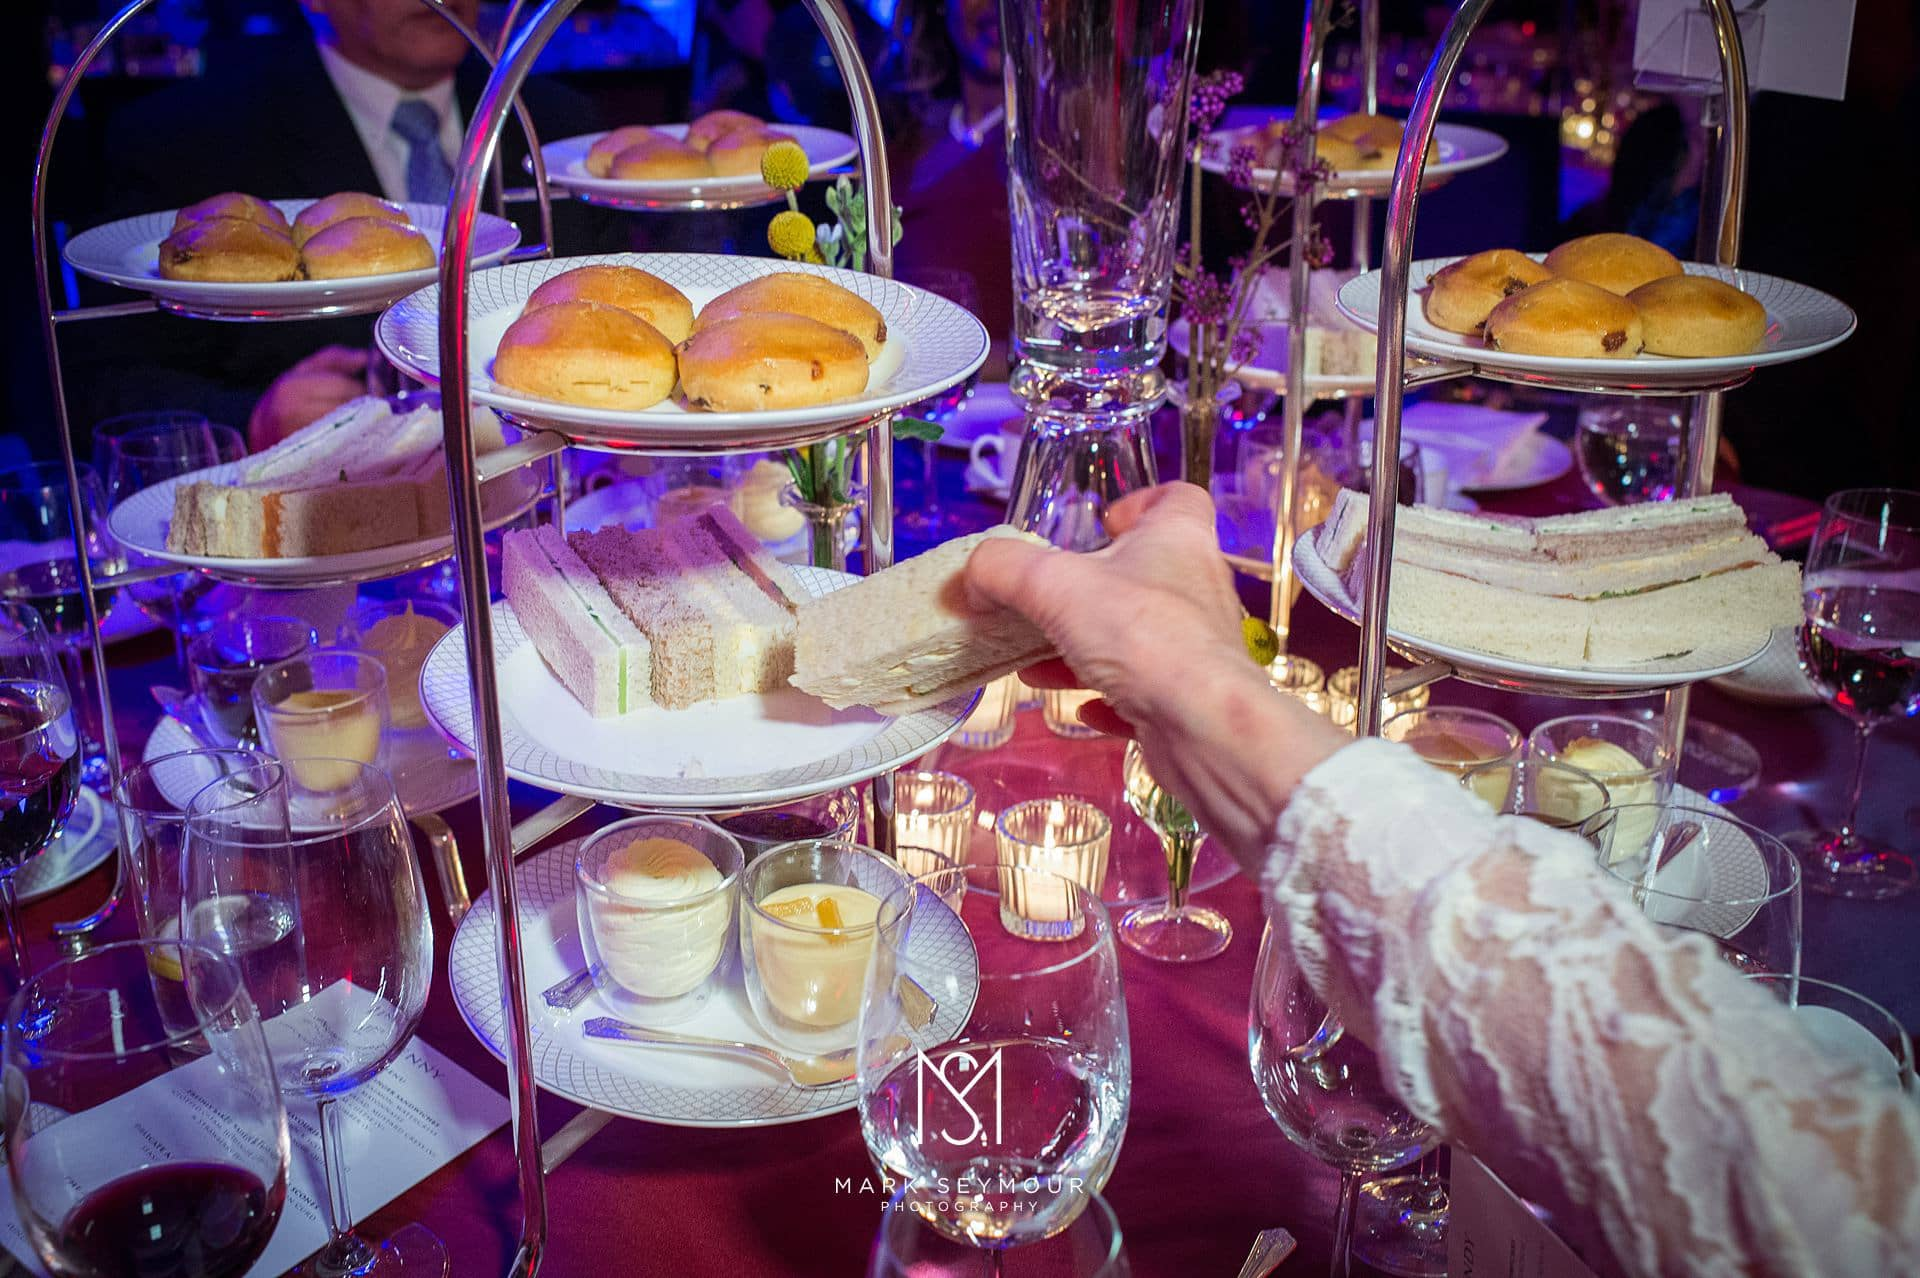 Afternoon tea at The Savoy wedding